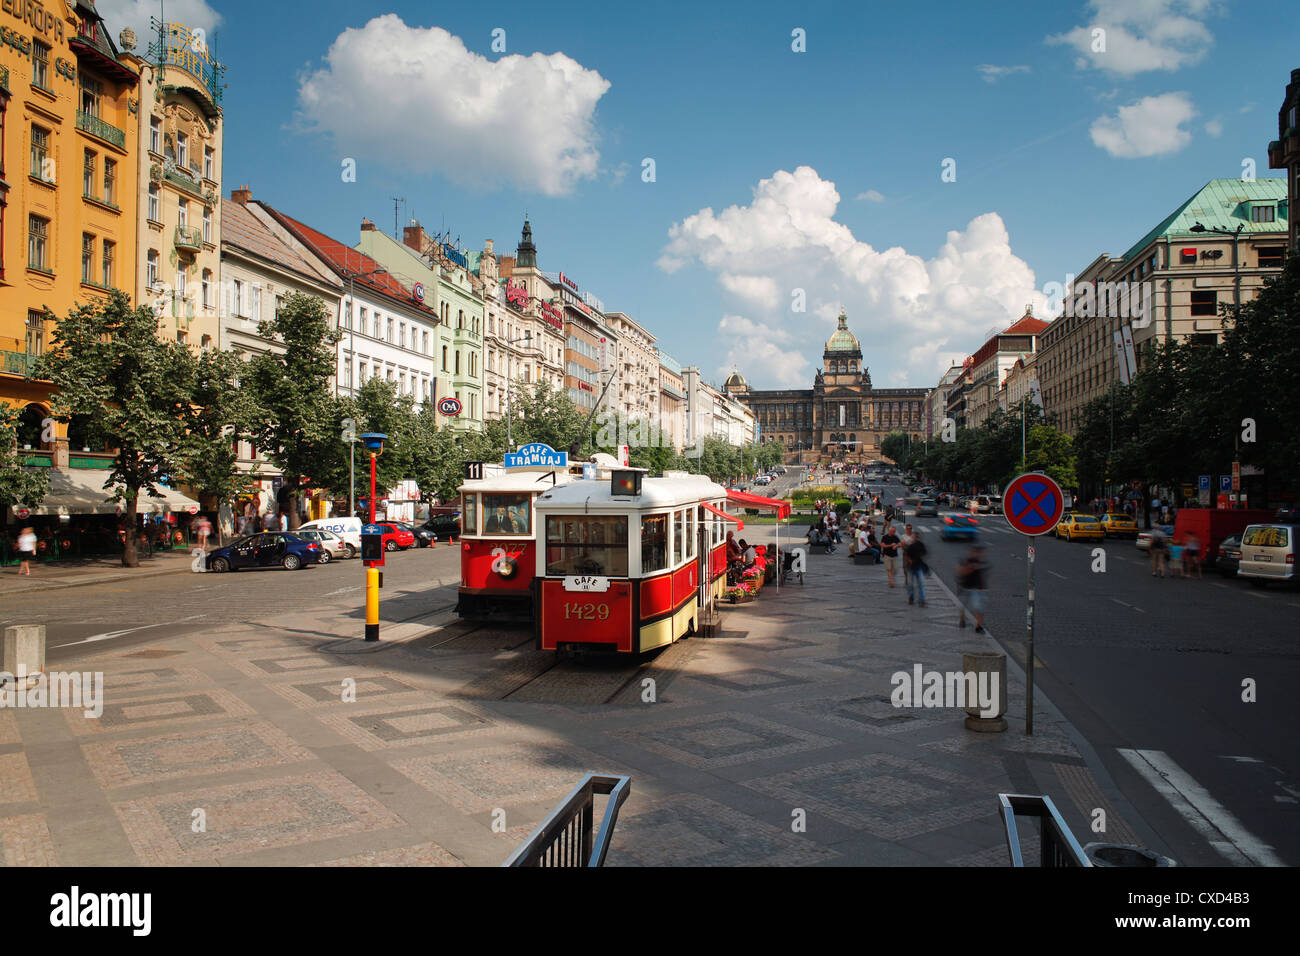 Wenceslas Square, Prague, Czech Republic, Europe - Stock Image